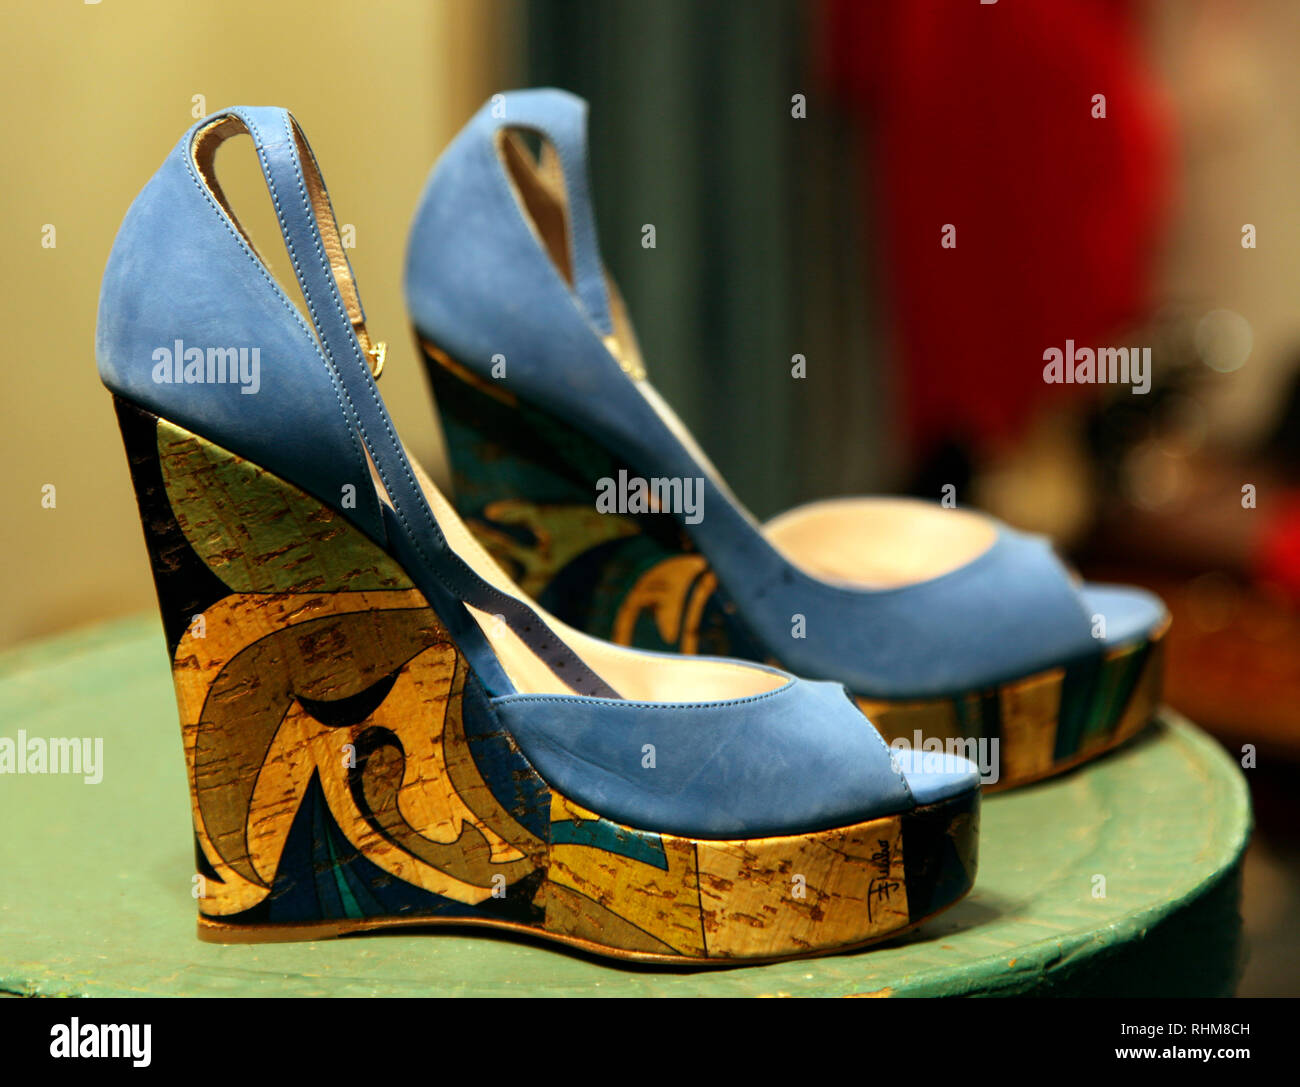 Platform shoes by Pucci, on sale at The Store Yard, Portlaoise, Ireland - Stock Image